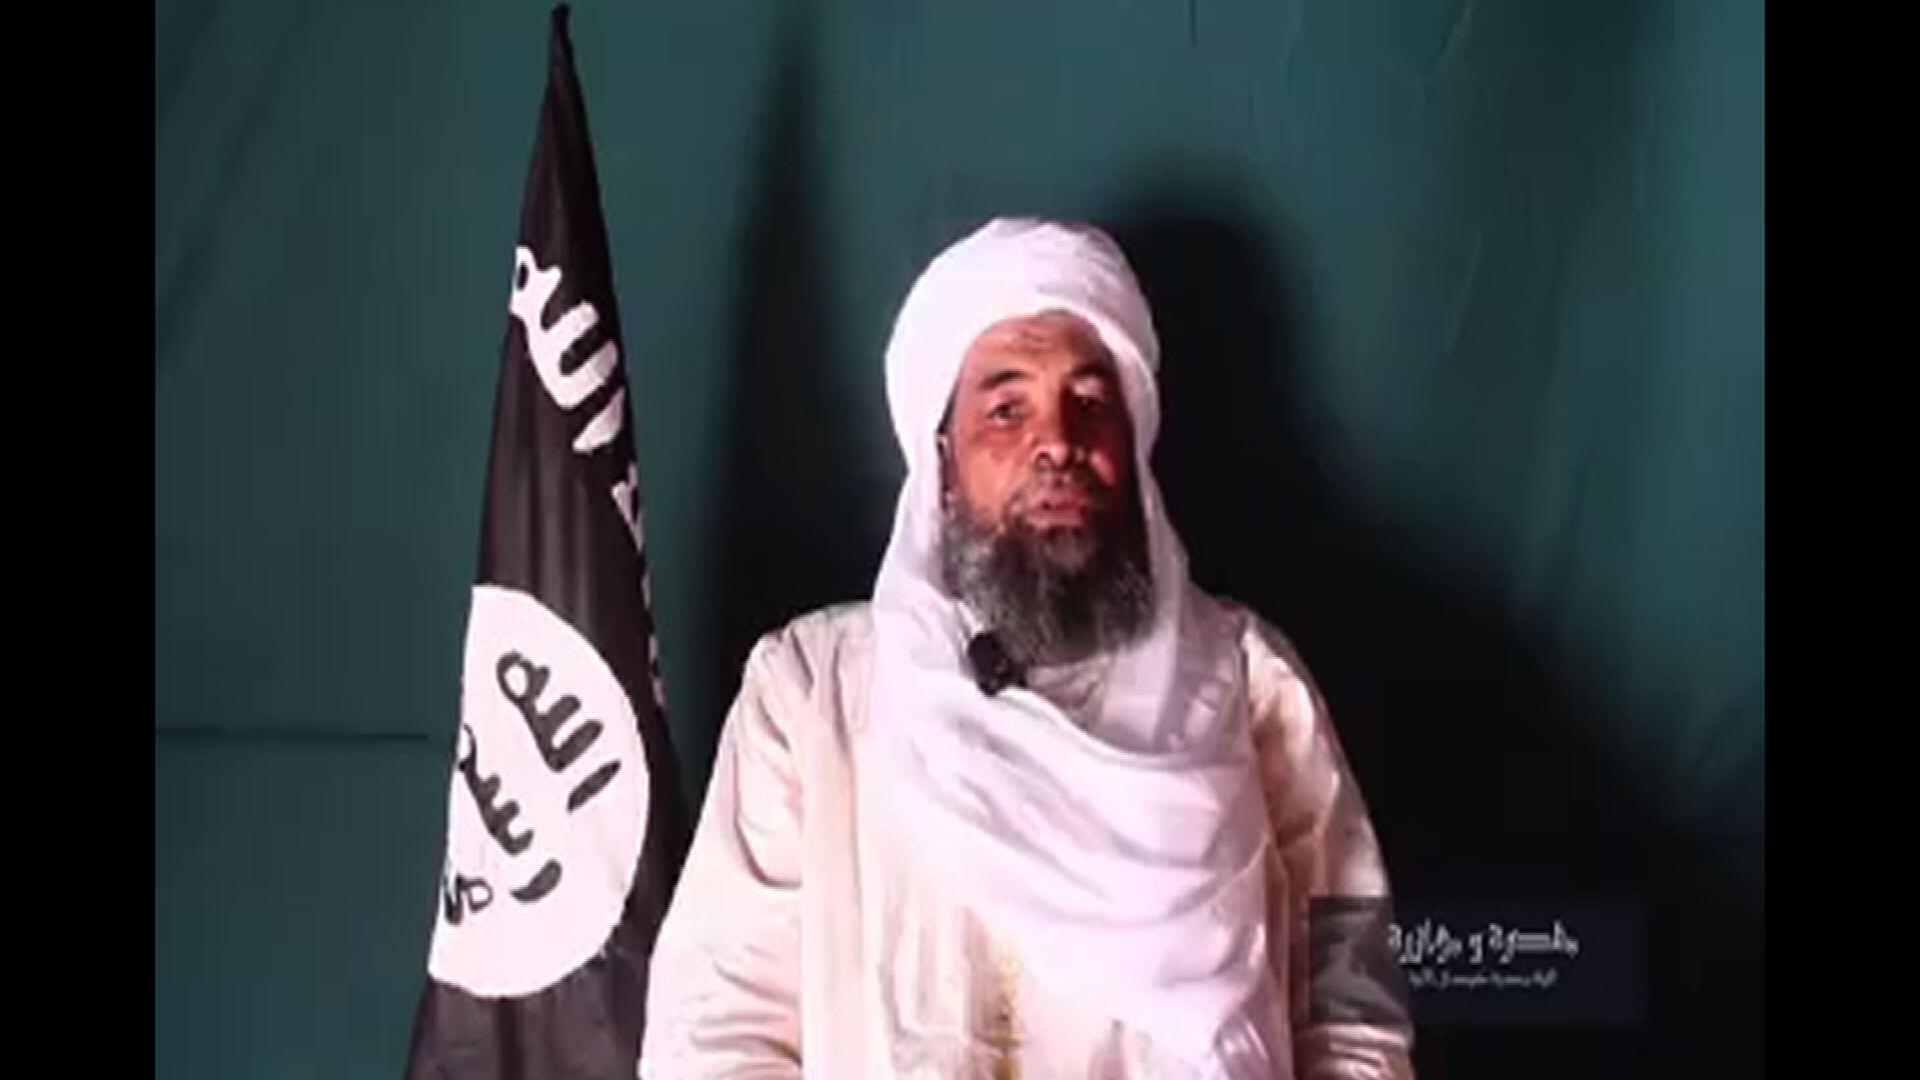 An image grab from a June 2016 video released by the Islamist group Ansar Dine shows Iyad Ag Ghaly.